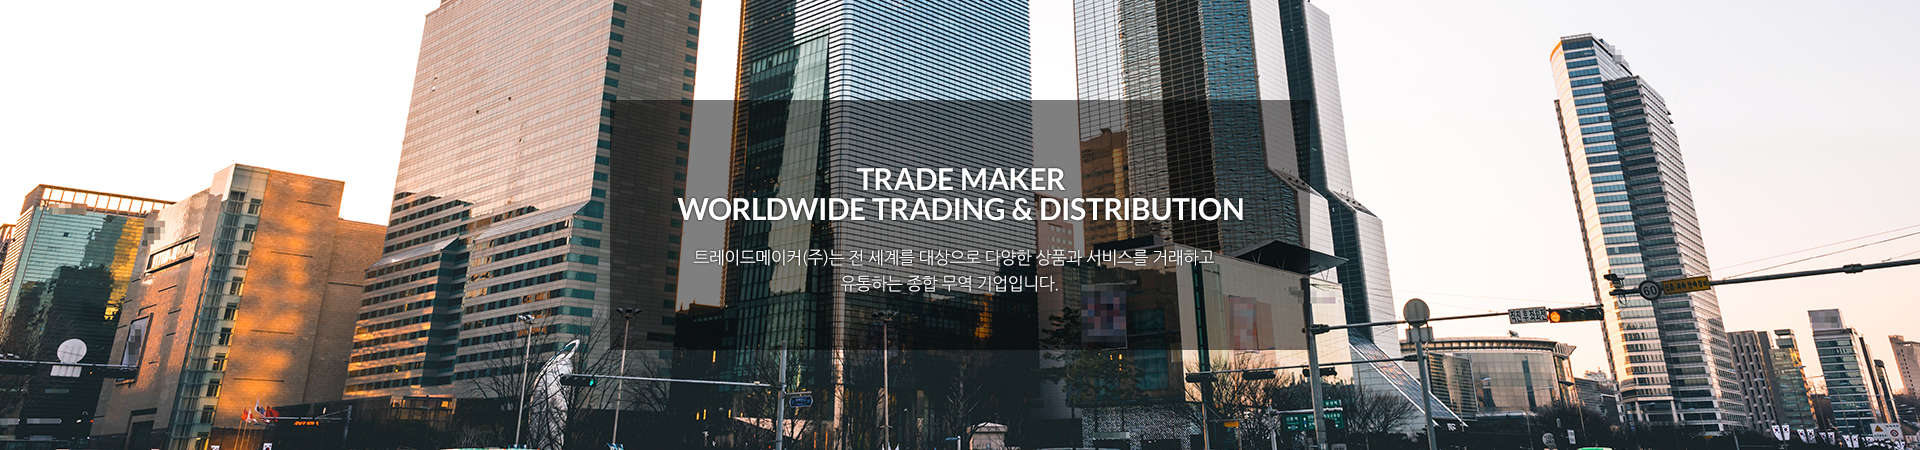 Worldwide Trading & Distribution